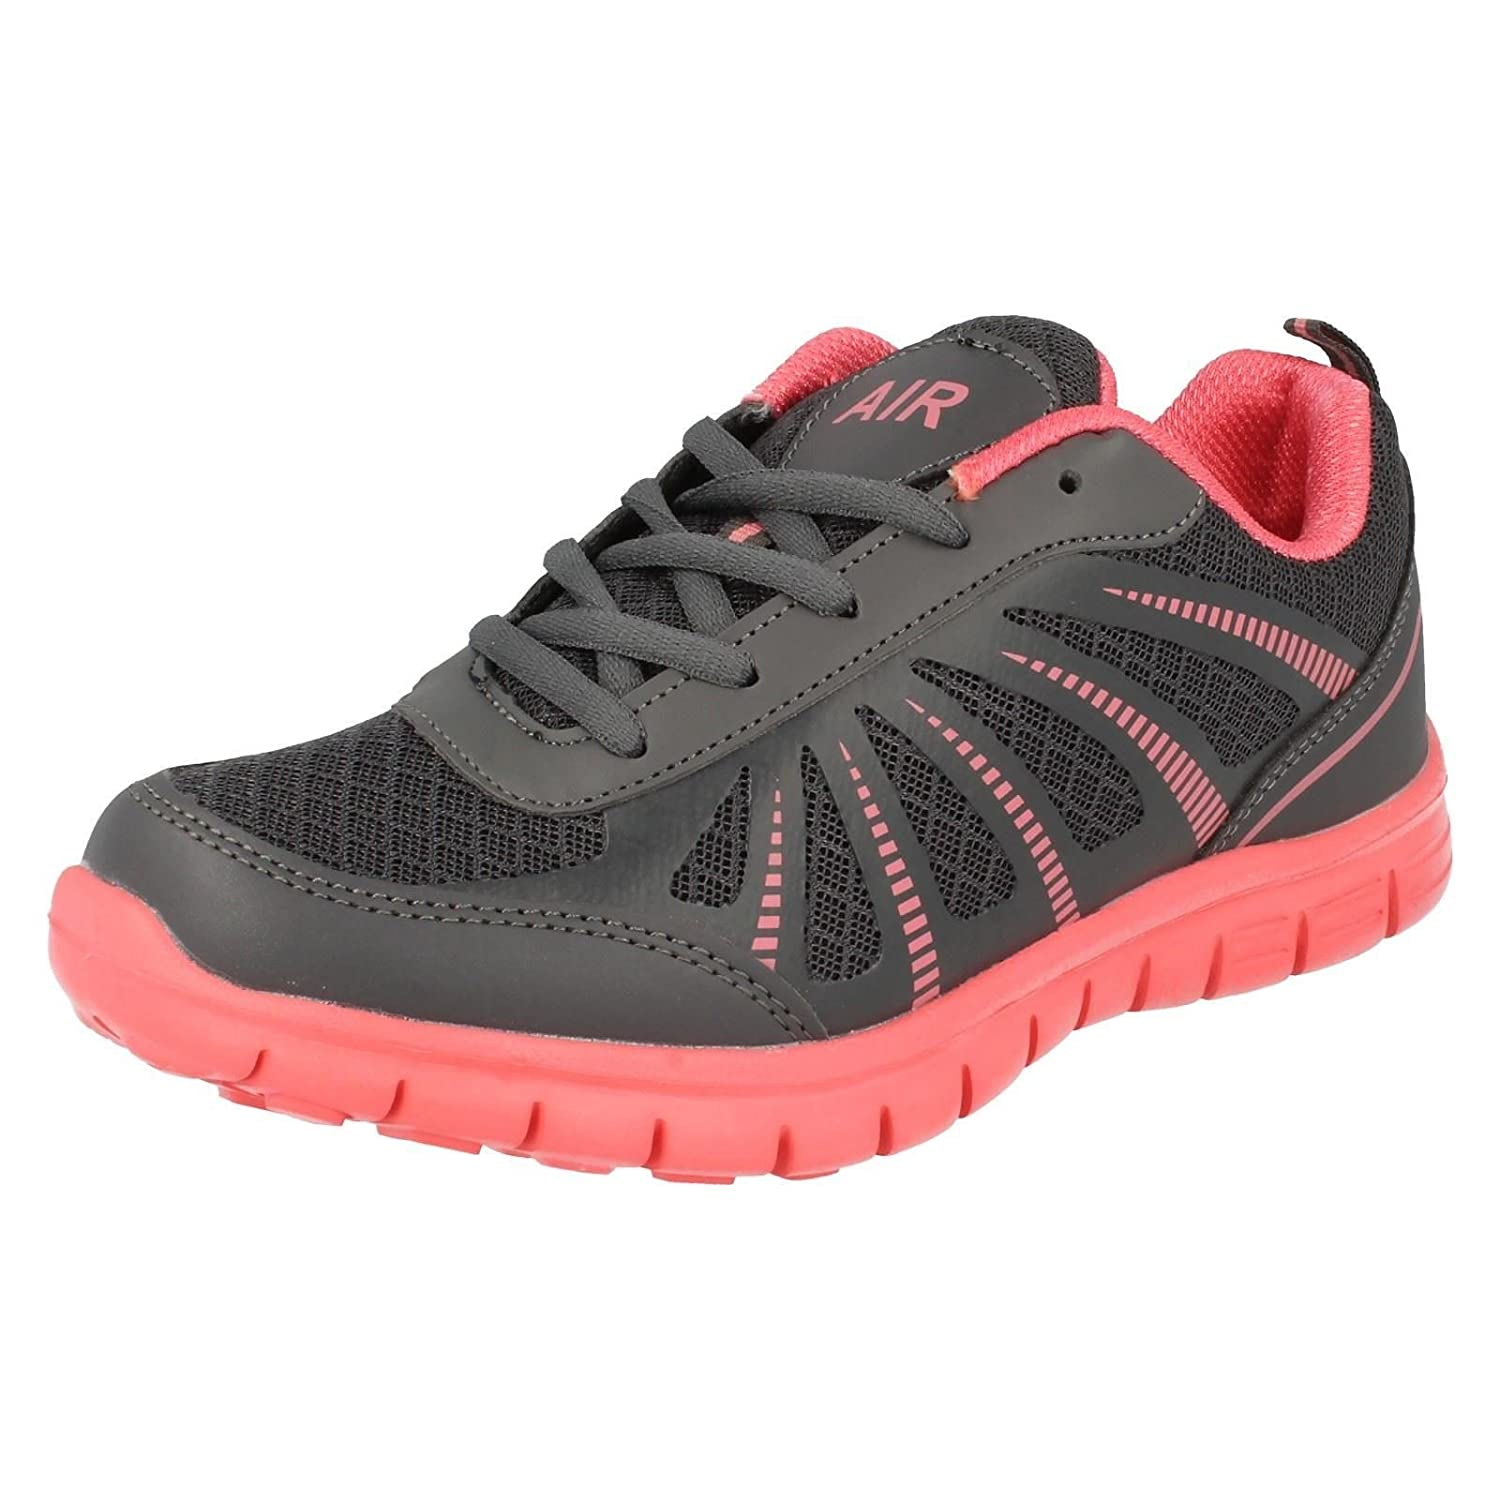 LADIES AIR TECH LACE UP TRAINERS IN DARK GREY//SALMON TRACER